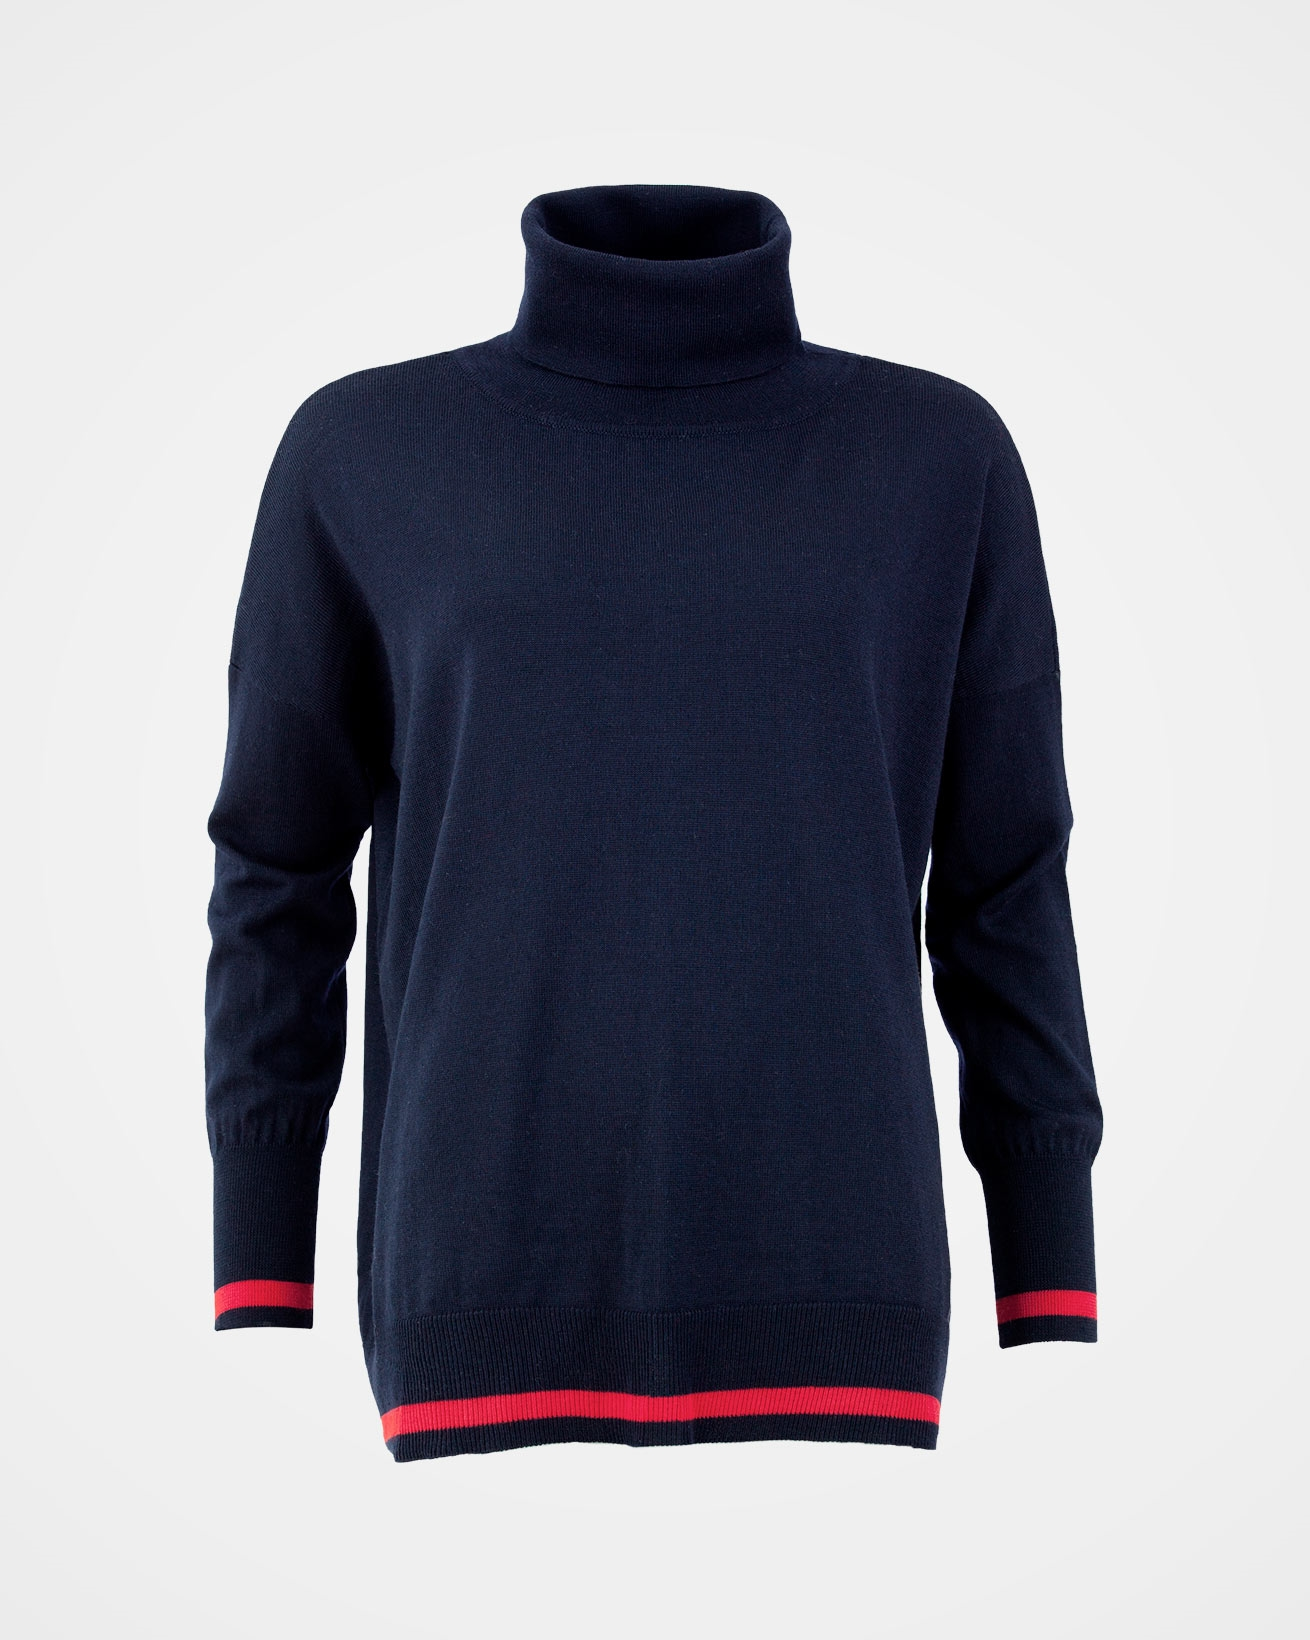 7401_slouchy-fine-knit-roll-neck-jumper_navy-red-tipping_front.jpg